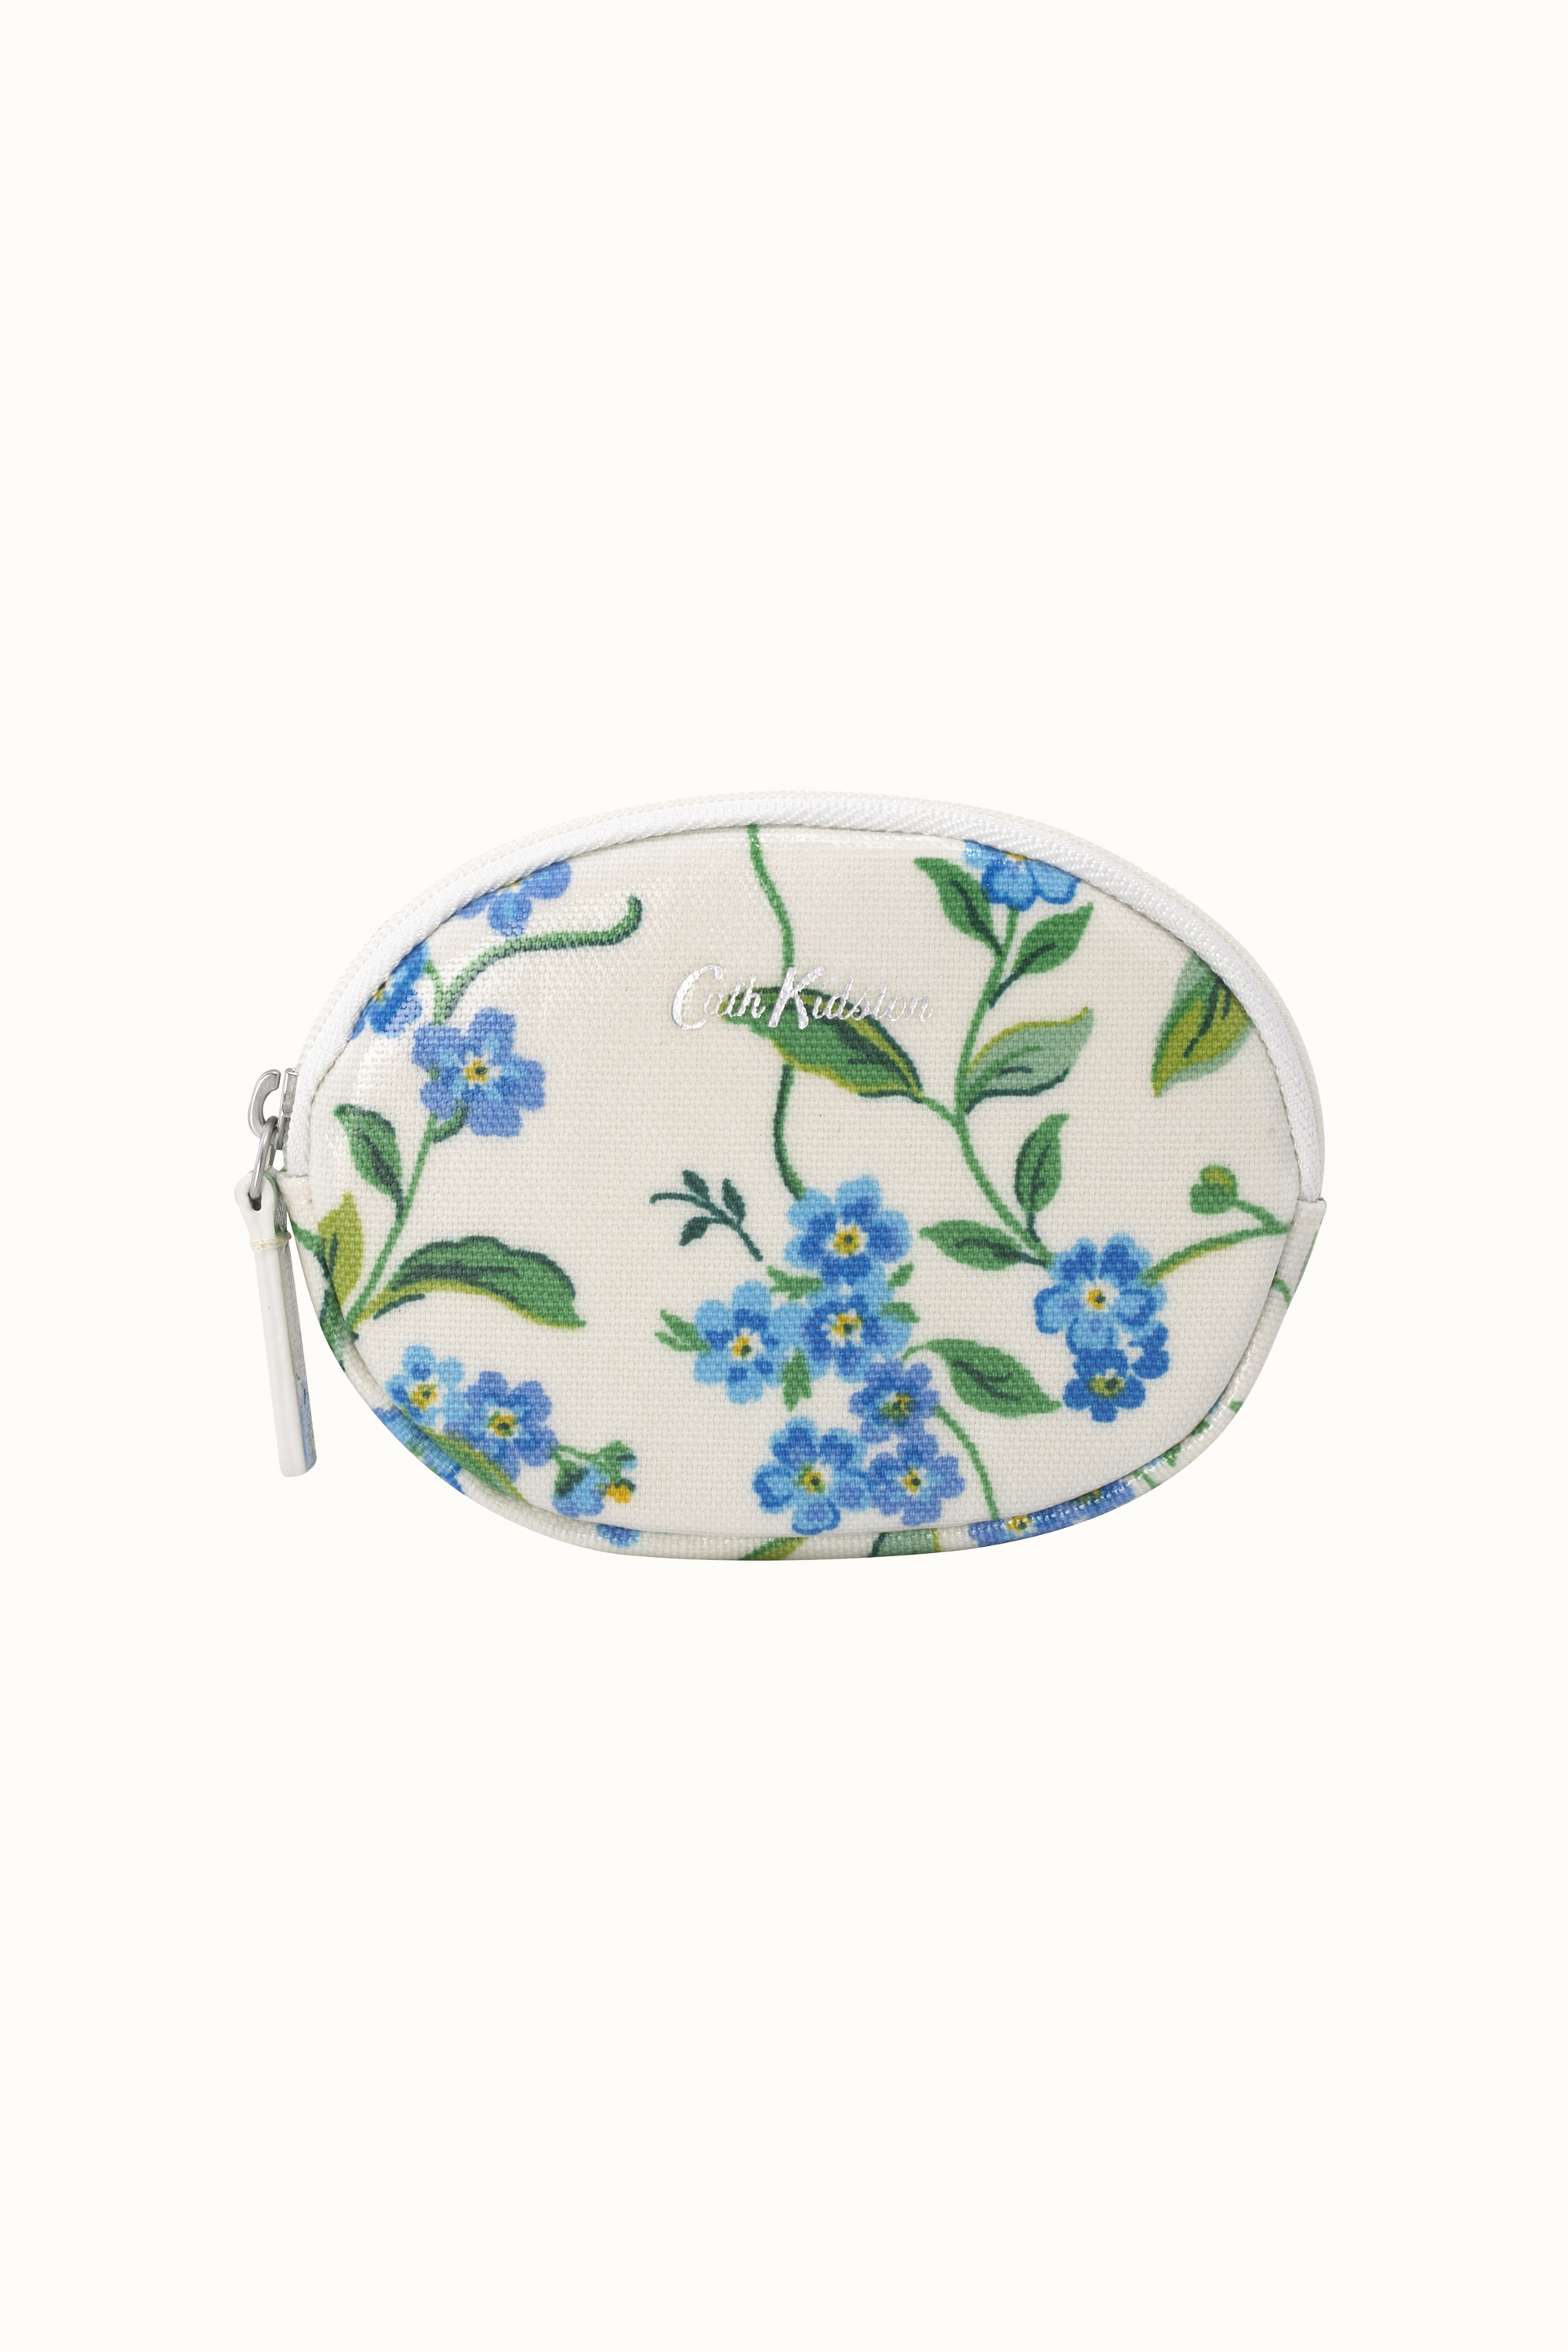 Cath Kidston Forget Me Not Oval Coin Purse in Cream